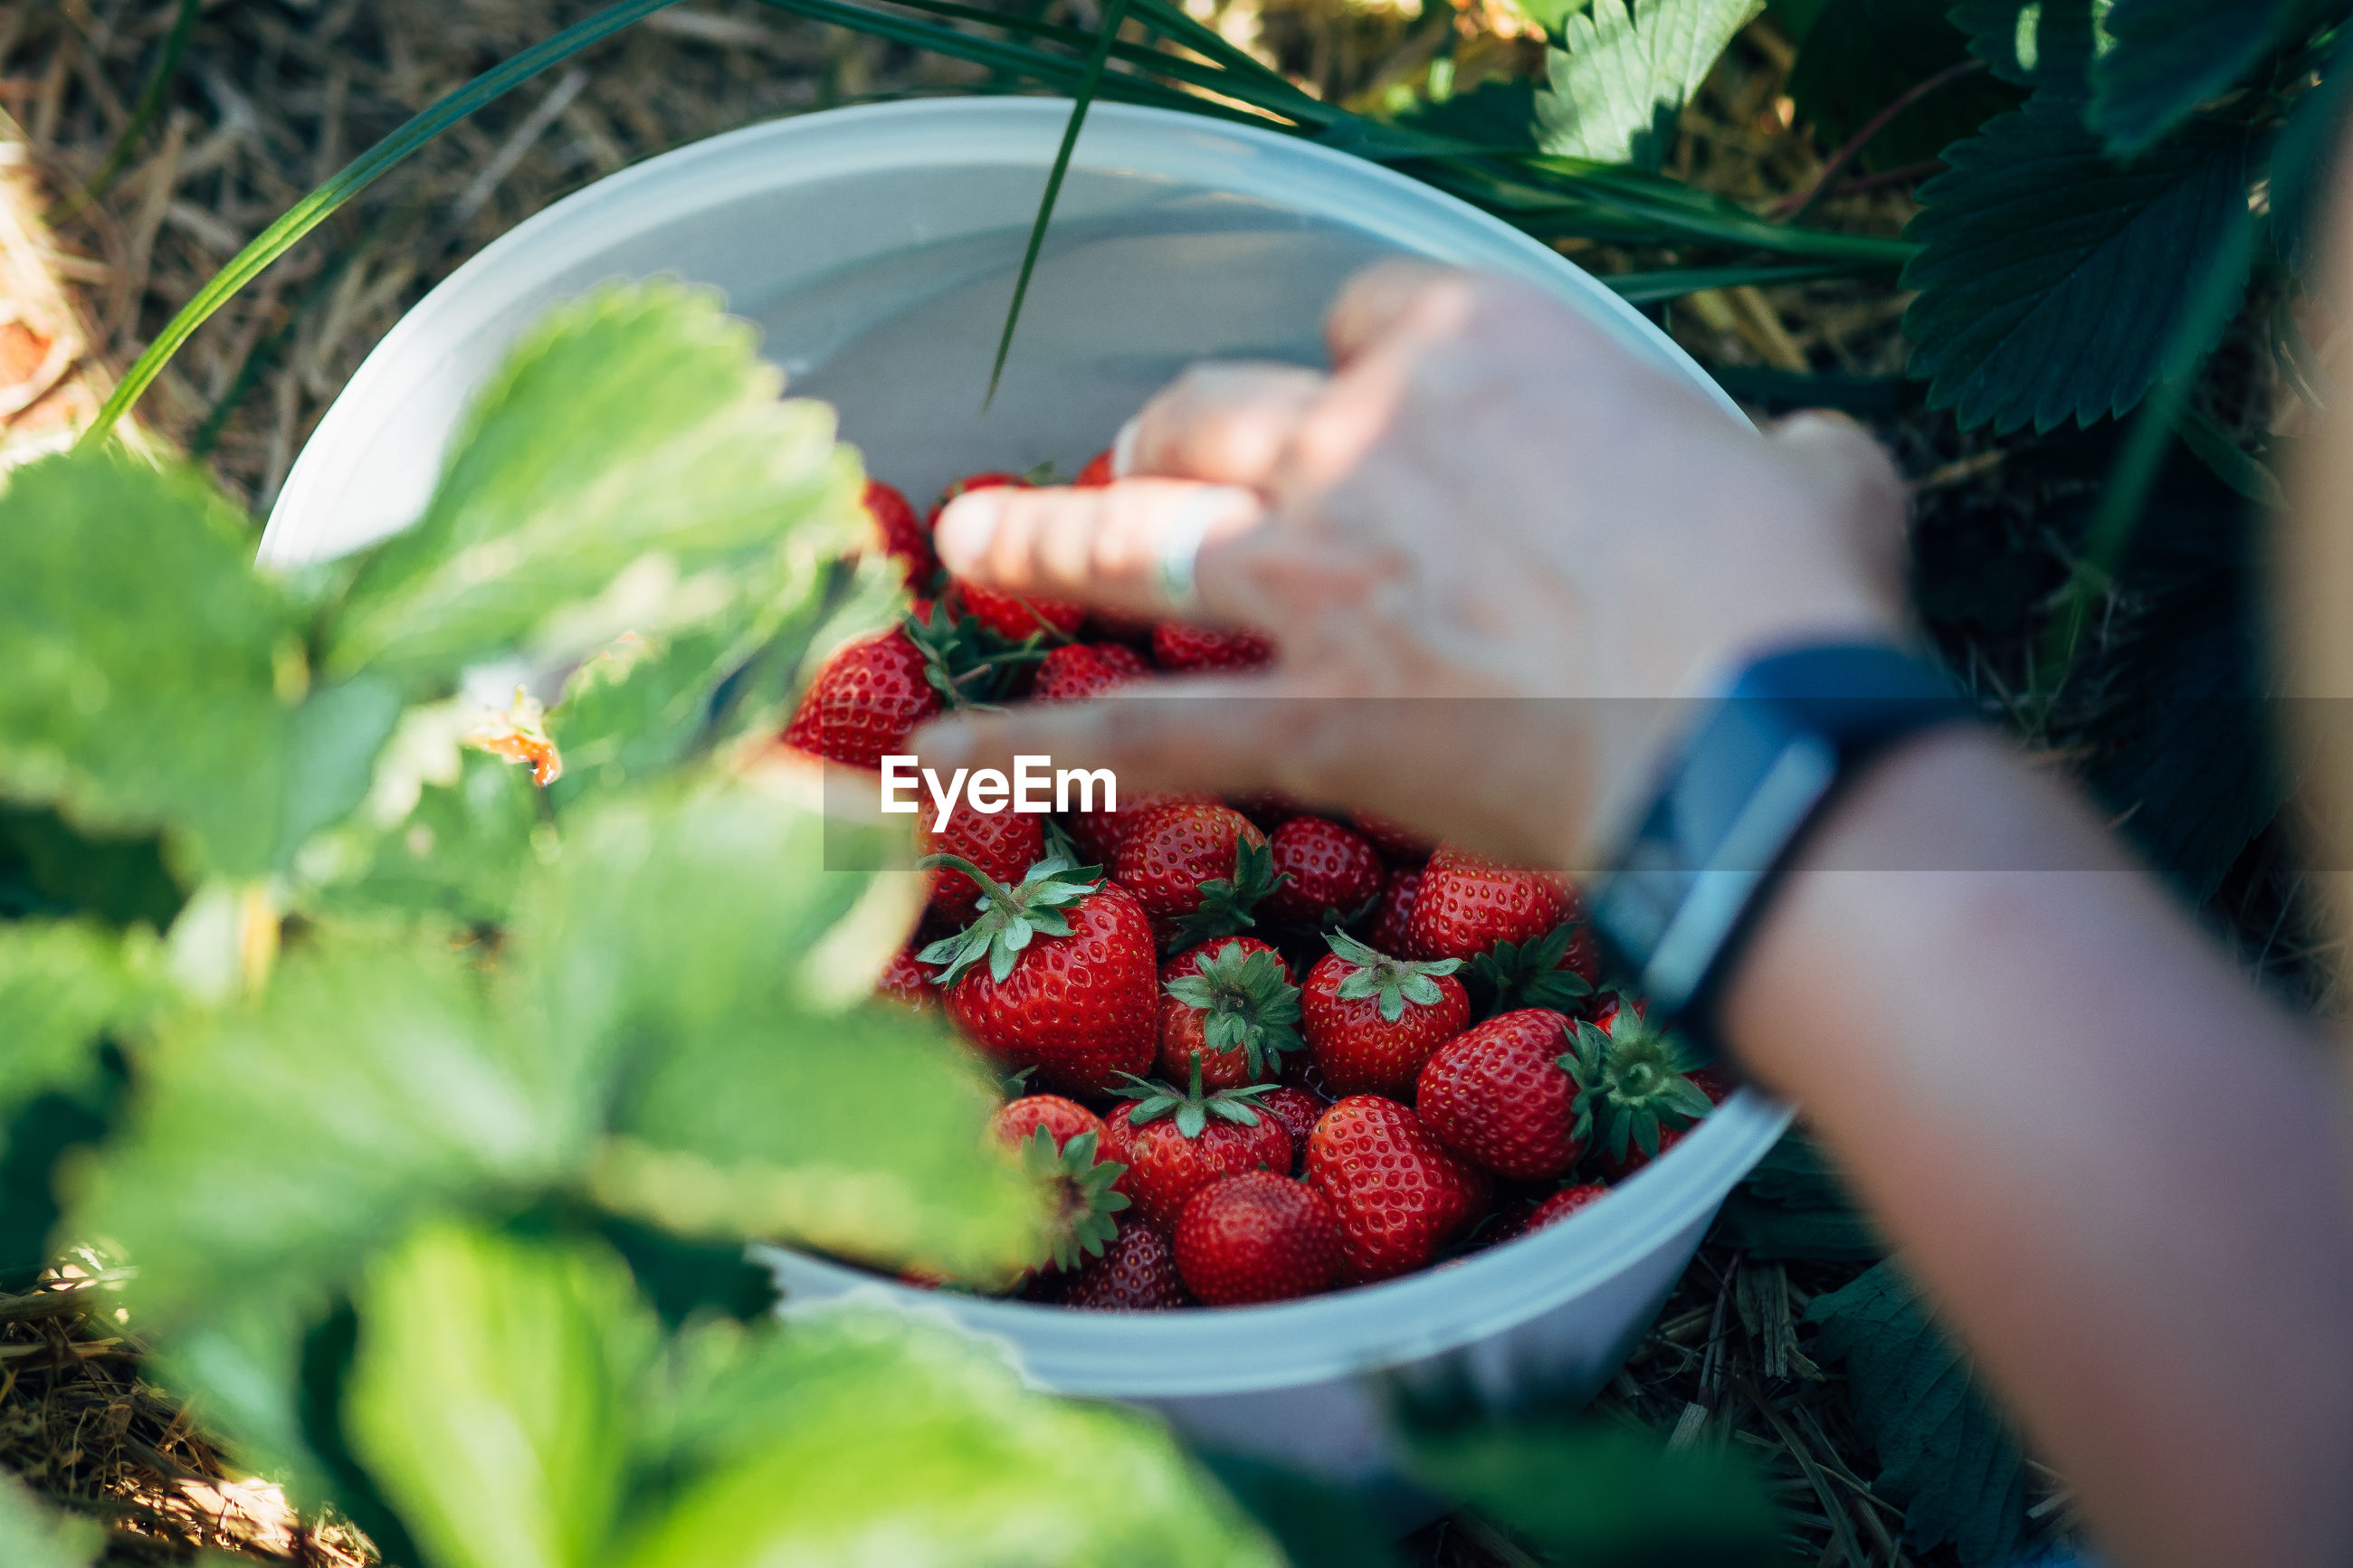 Cropped image of woman picking strawberries from bowl at farm